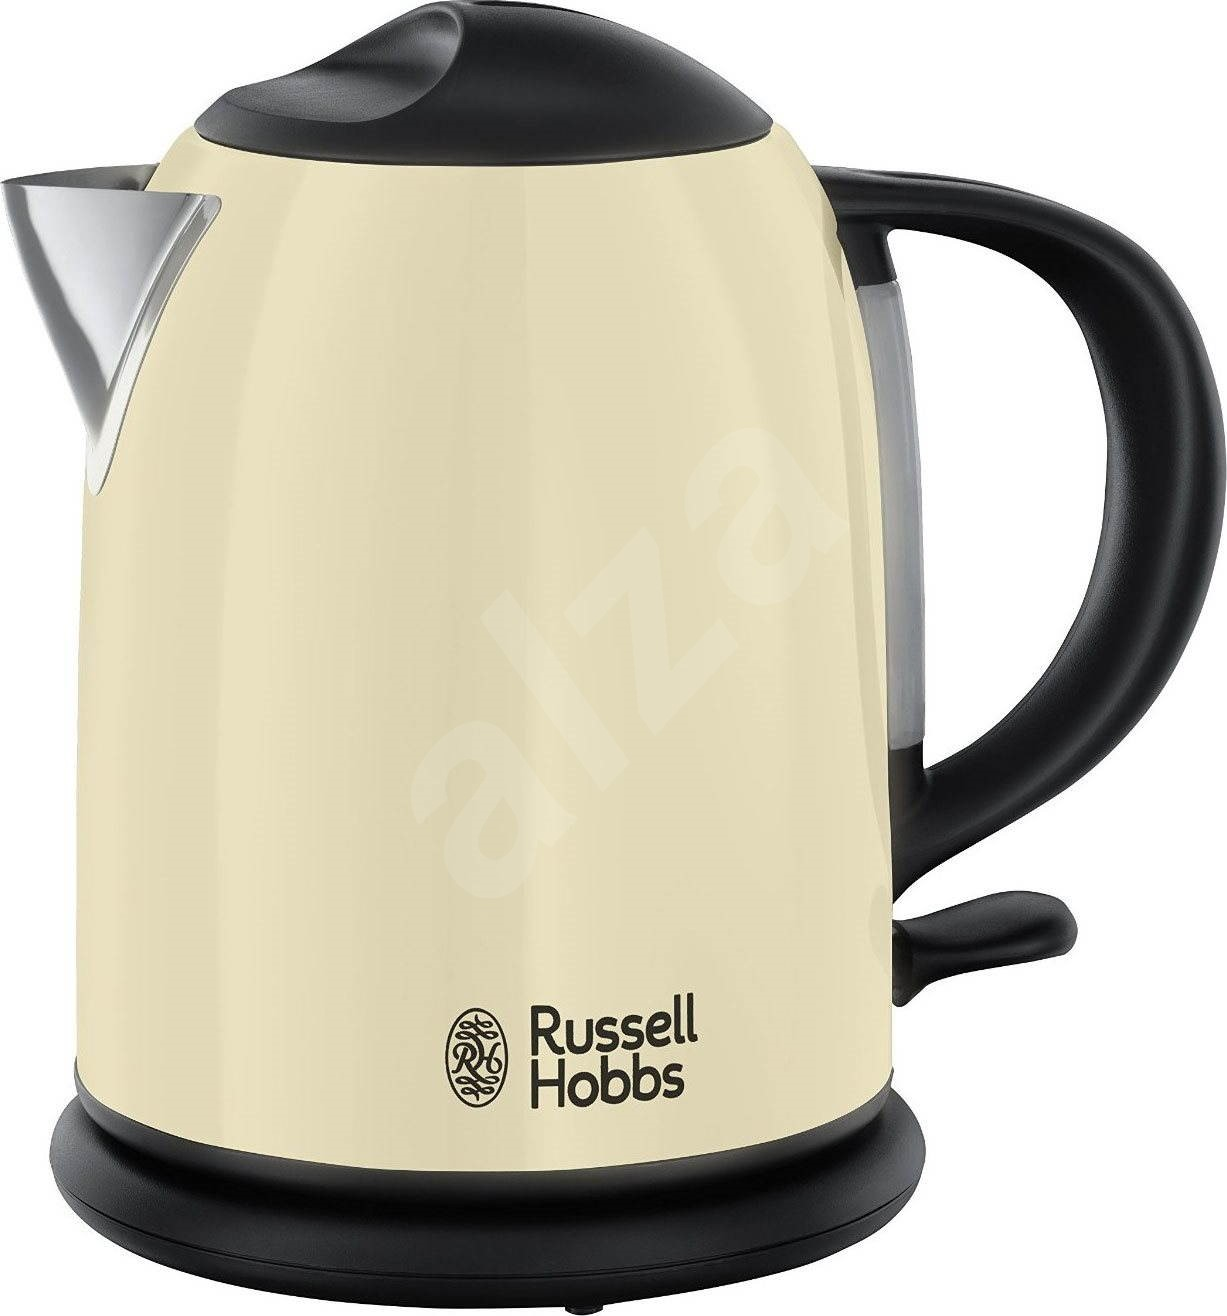 russell hobbs cream compact 20194 70 wasserkocher. Black Bedroom Furniture Sets. Home Design Ideas